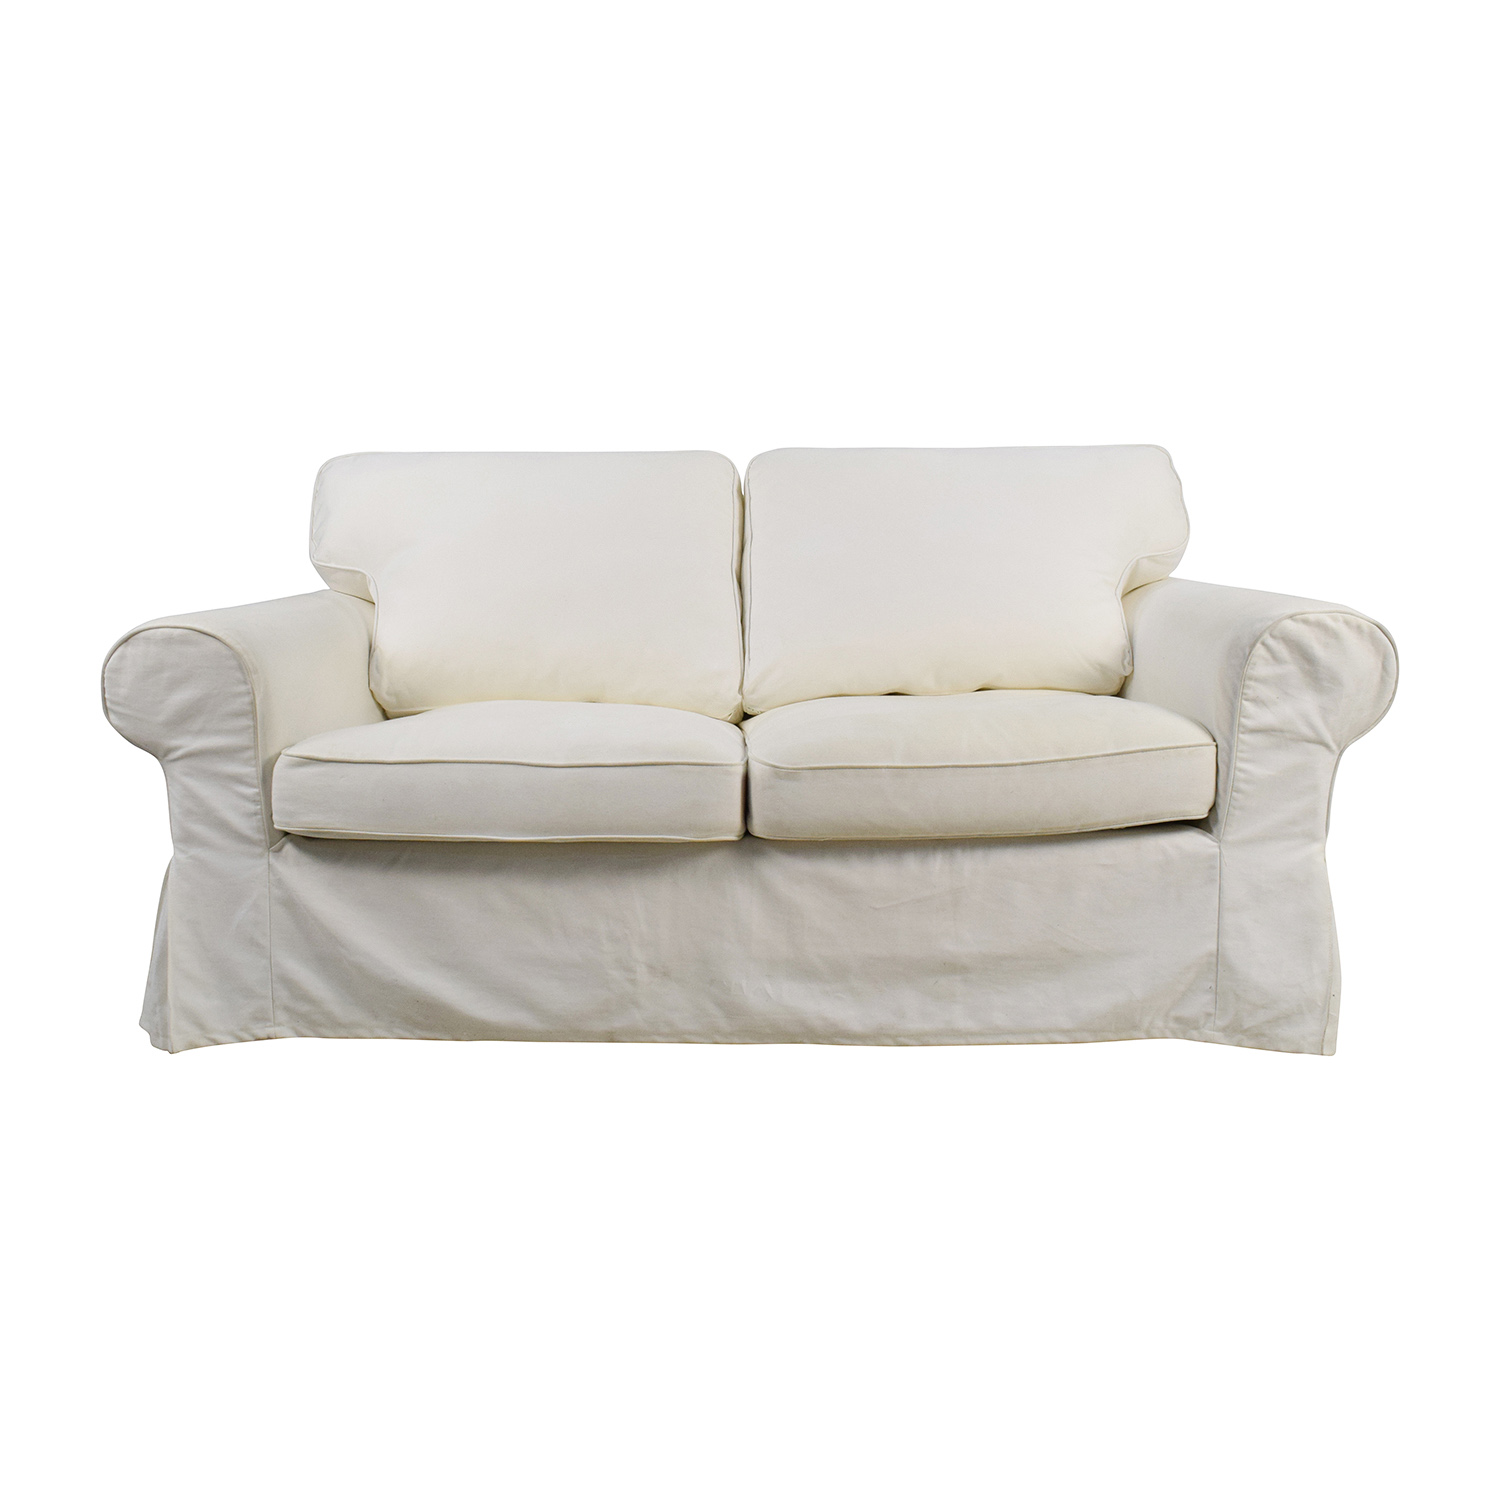 Loveseat Ikea Kaiyo Quality Used Furniture